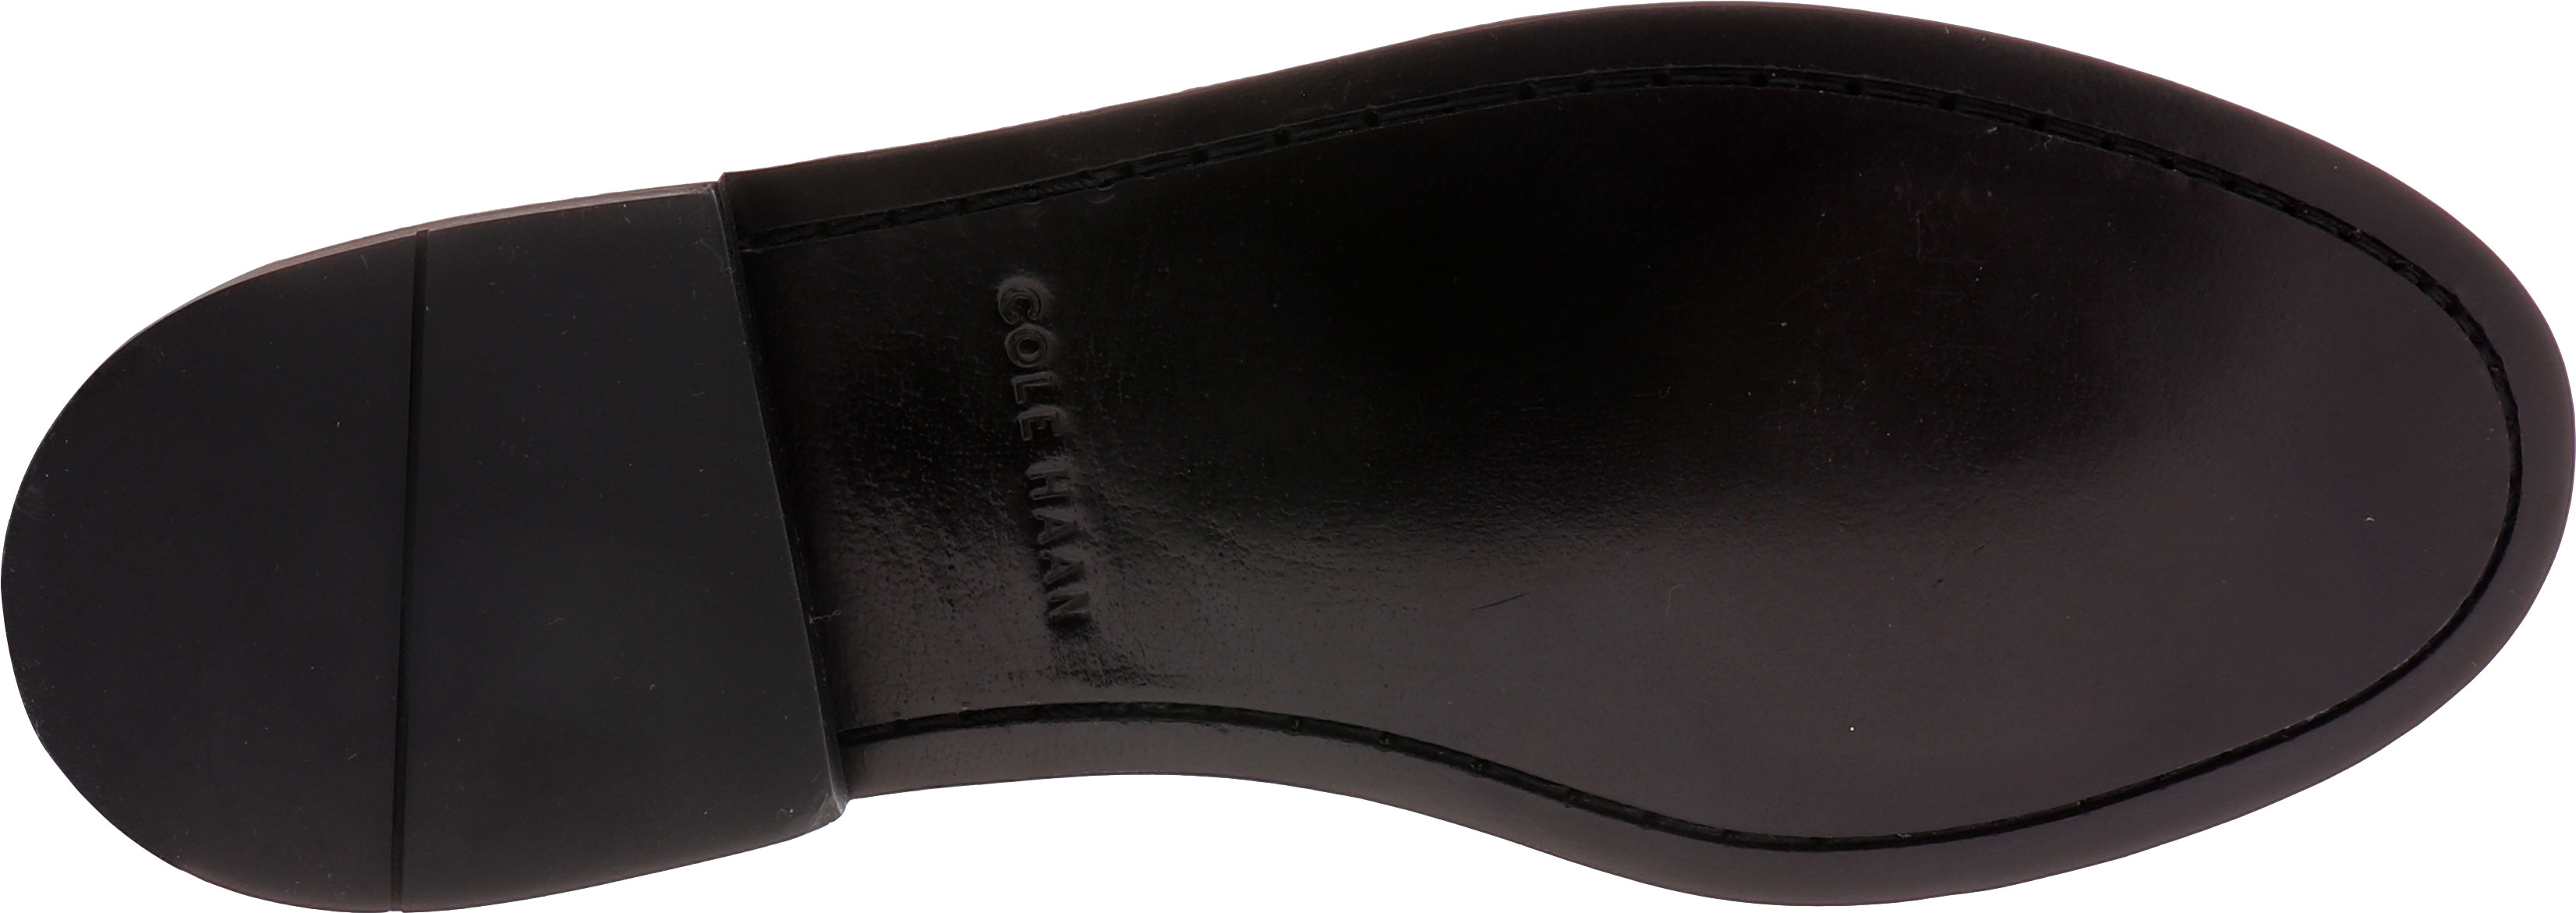 31ab3a0c076 Cole Haan Men s 03504 - Pinch Penny - The Shoe Mart